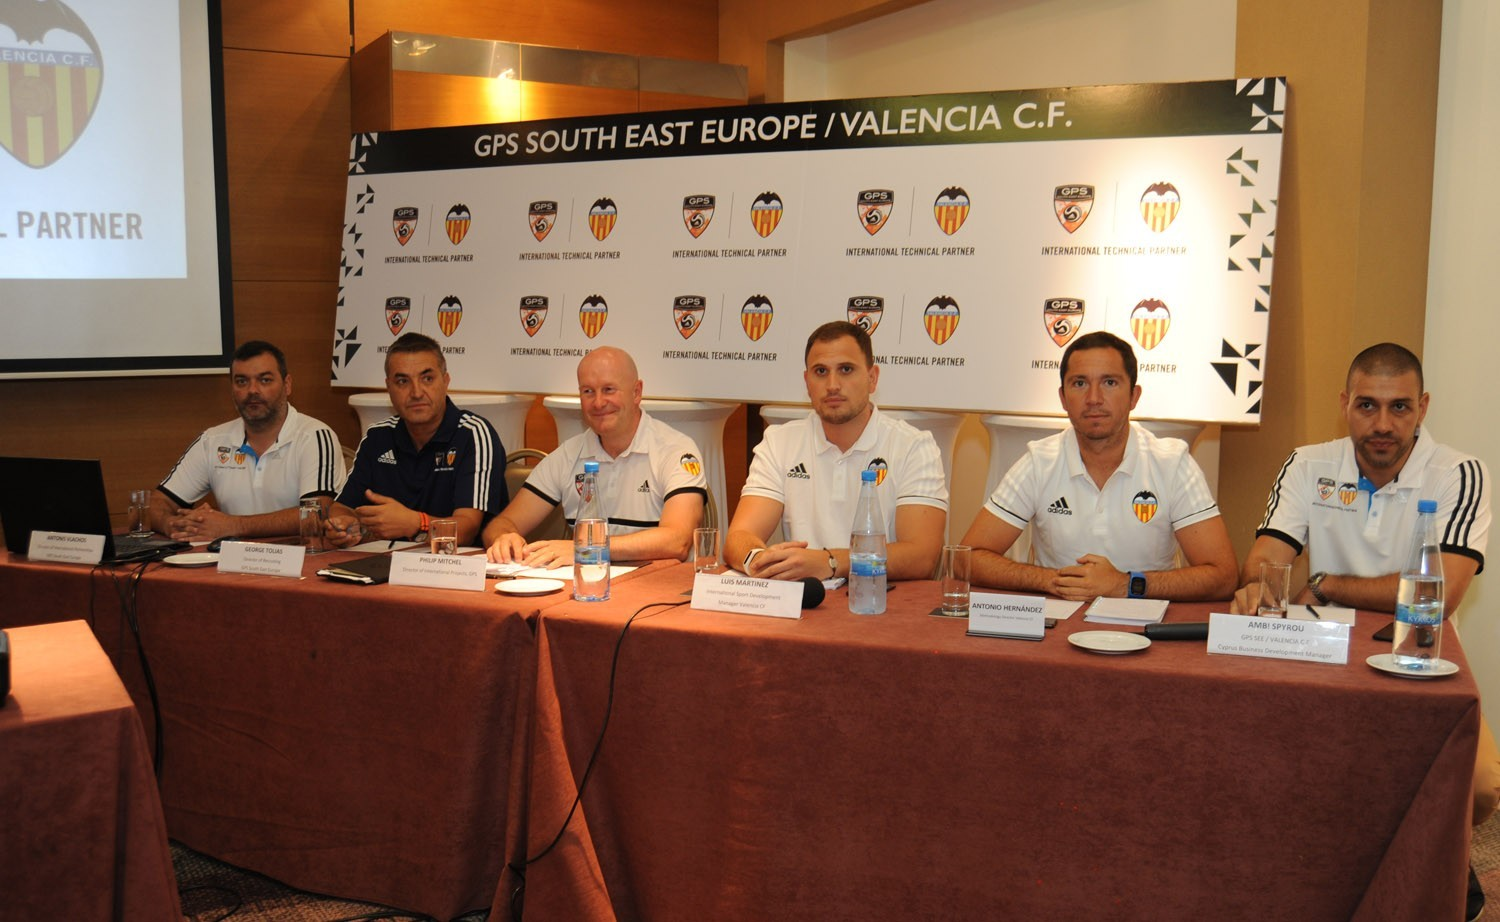 http://www.sigmalive.com/application/cache/default/images/files/1500x922/Valencia_Cyprus_Presser1.jpg